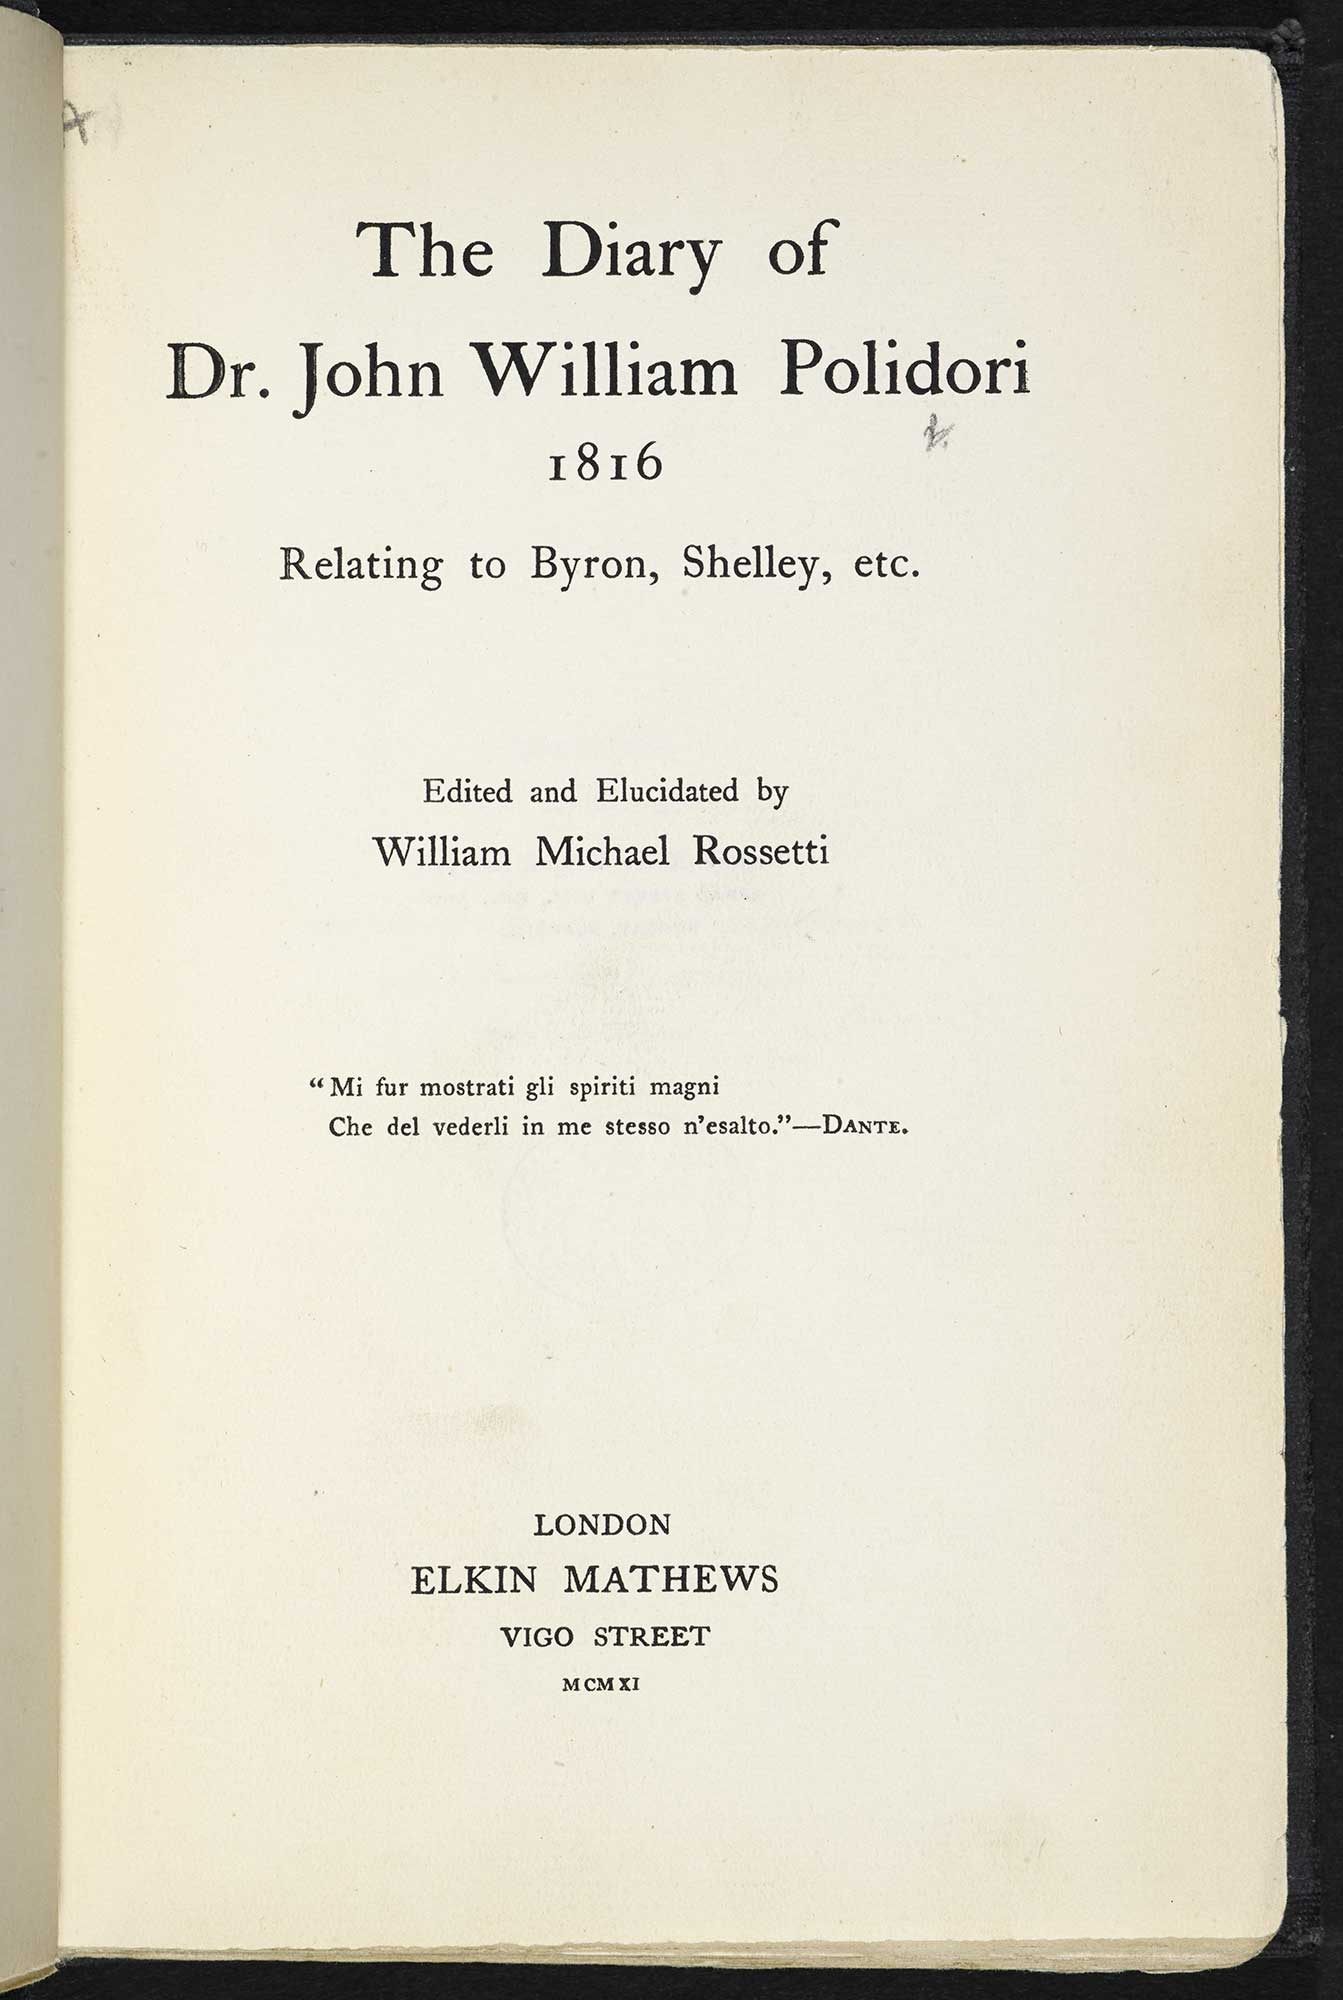 The Diary of Dr. John William Polidori [page: title page]